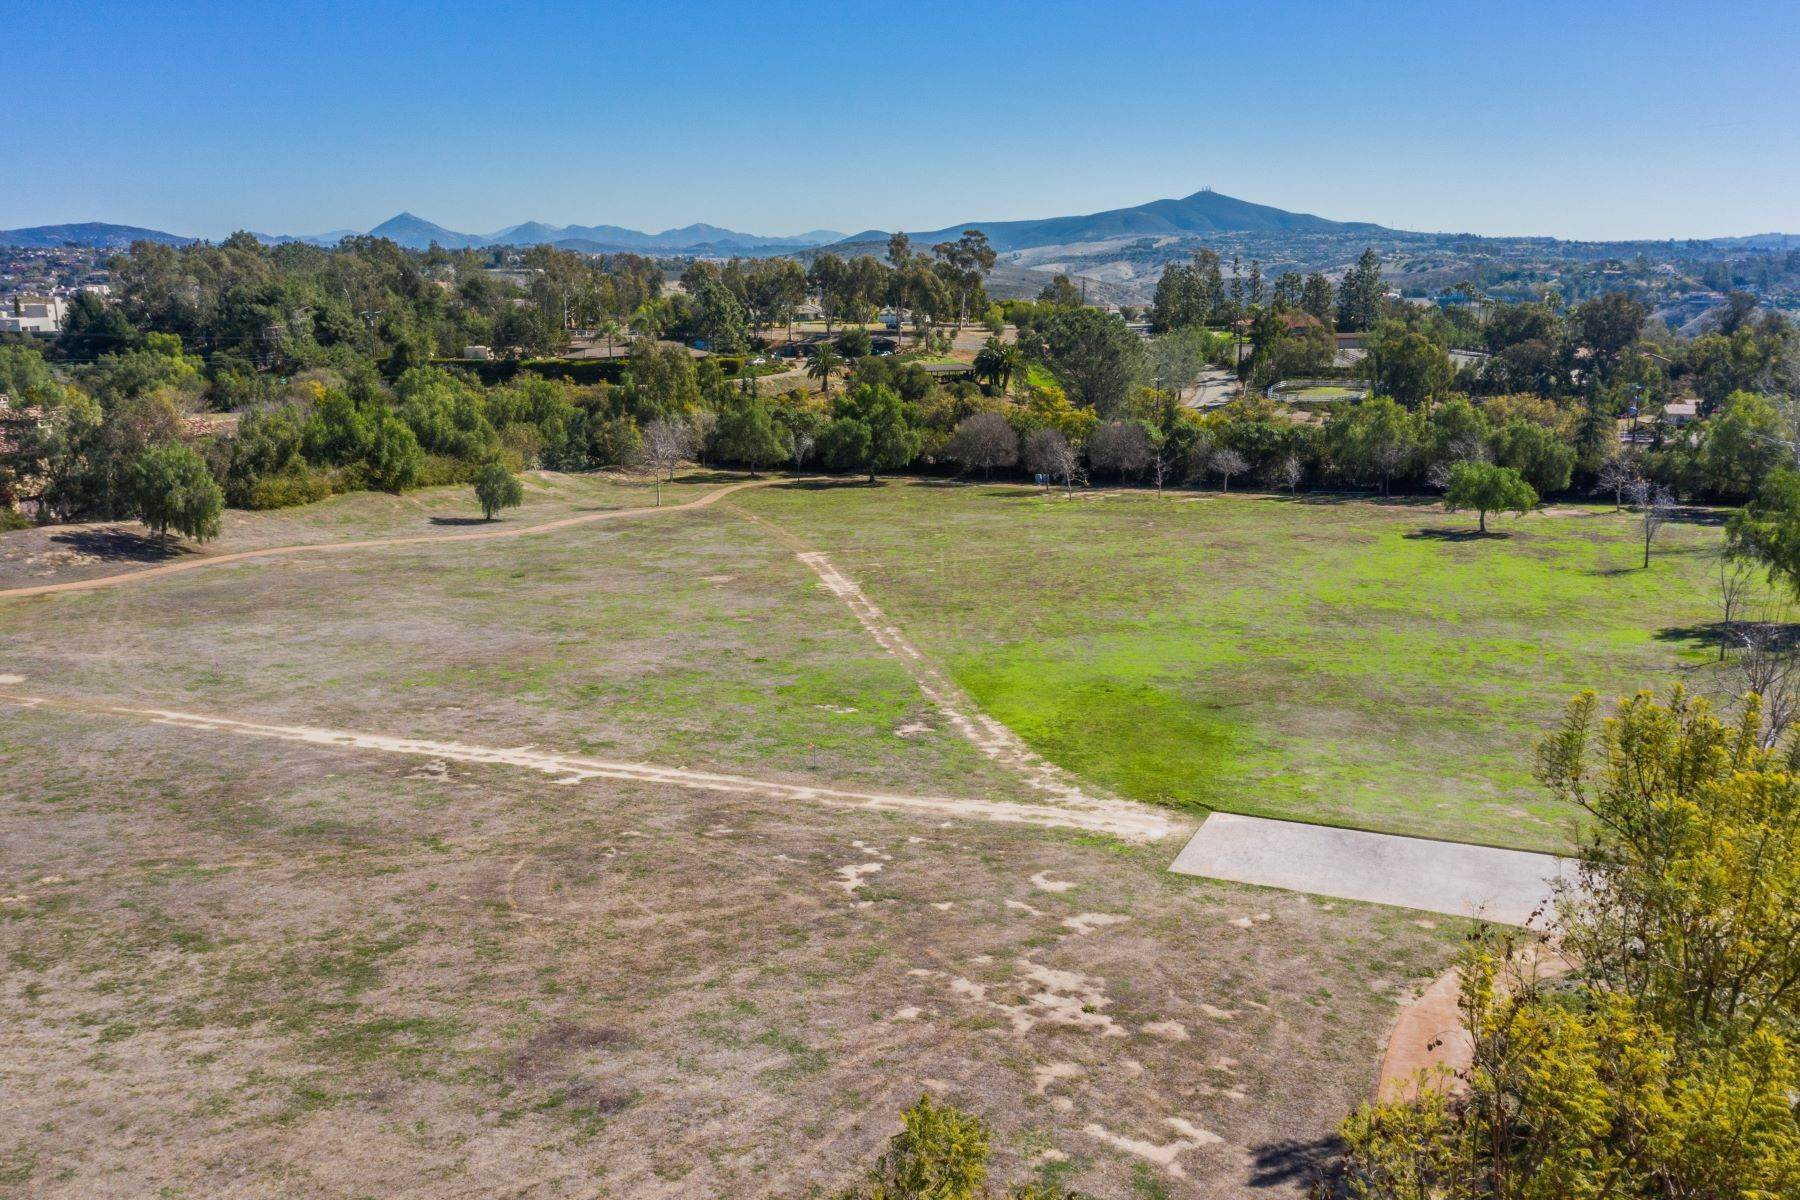 5. Land for Sale at 17048 El Mirador, Rancho Santa Fe, CA 92067 17048 El Mirador Rancho Santa Fe, California 92067 United States